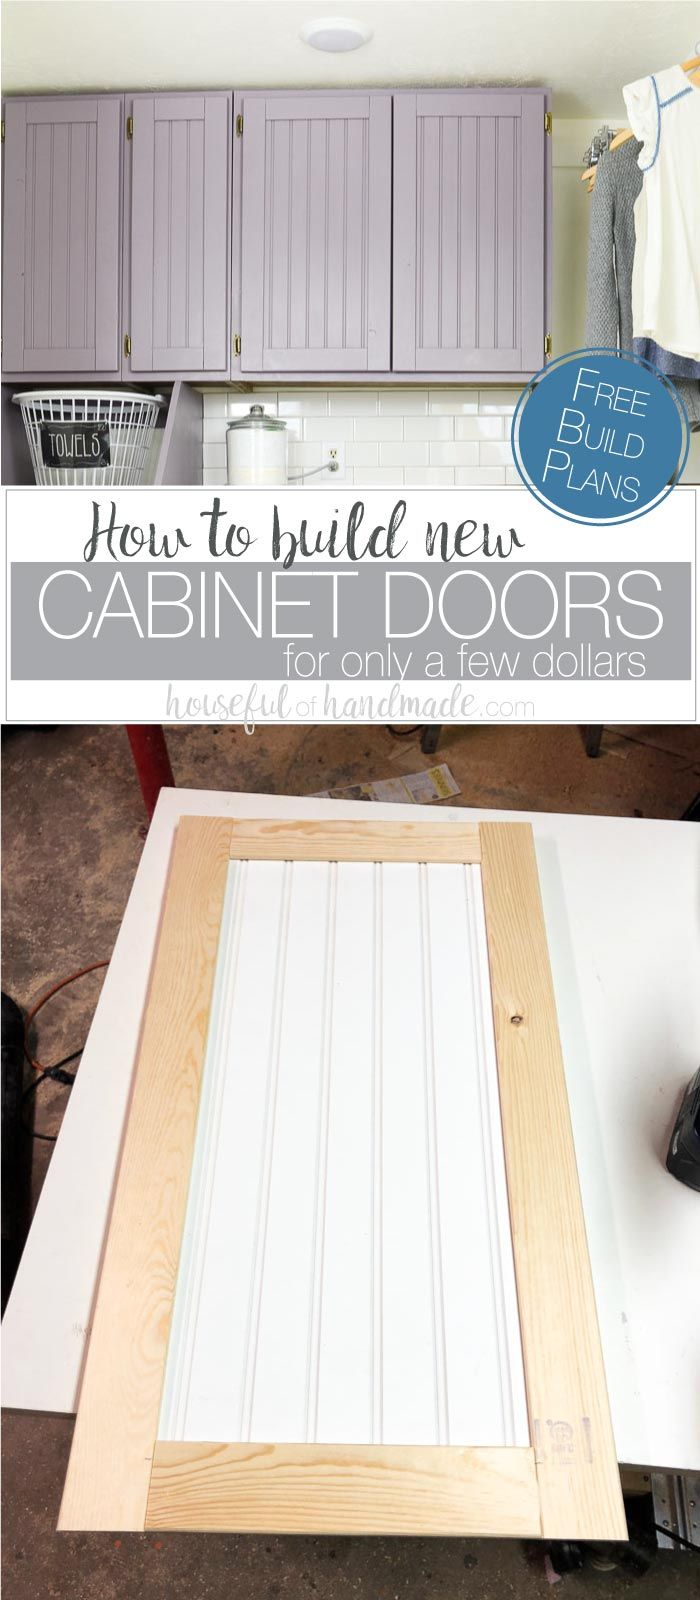 Have you ever wanted to update your old cabinets but don't have lots of money? With just a few tools and some know how, you can build cabinet doors very easily and inexpensively. These DIY shaker style cabinet doors were built for the laundry room for only $8 and some left over beadboard. Follow along as I share all the details to help you update those old cabinets too. Housefulofhandmade.com